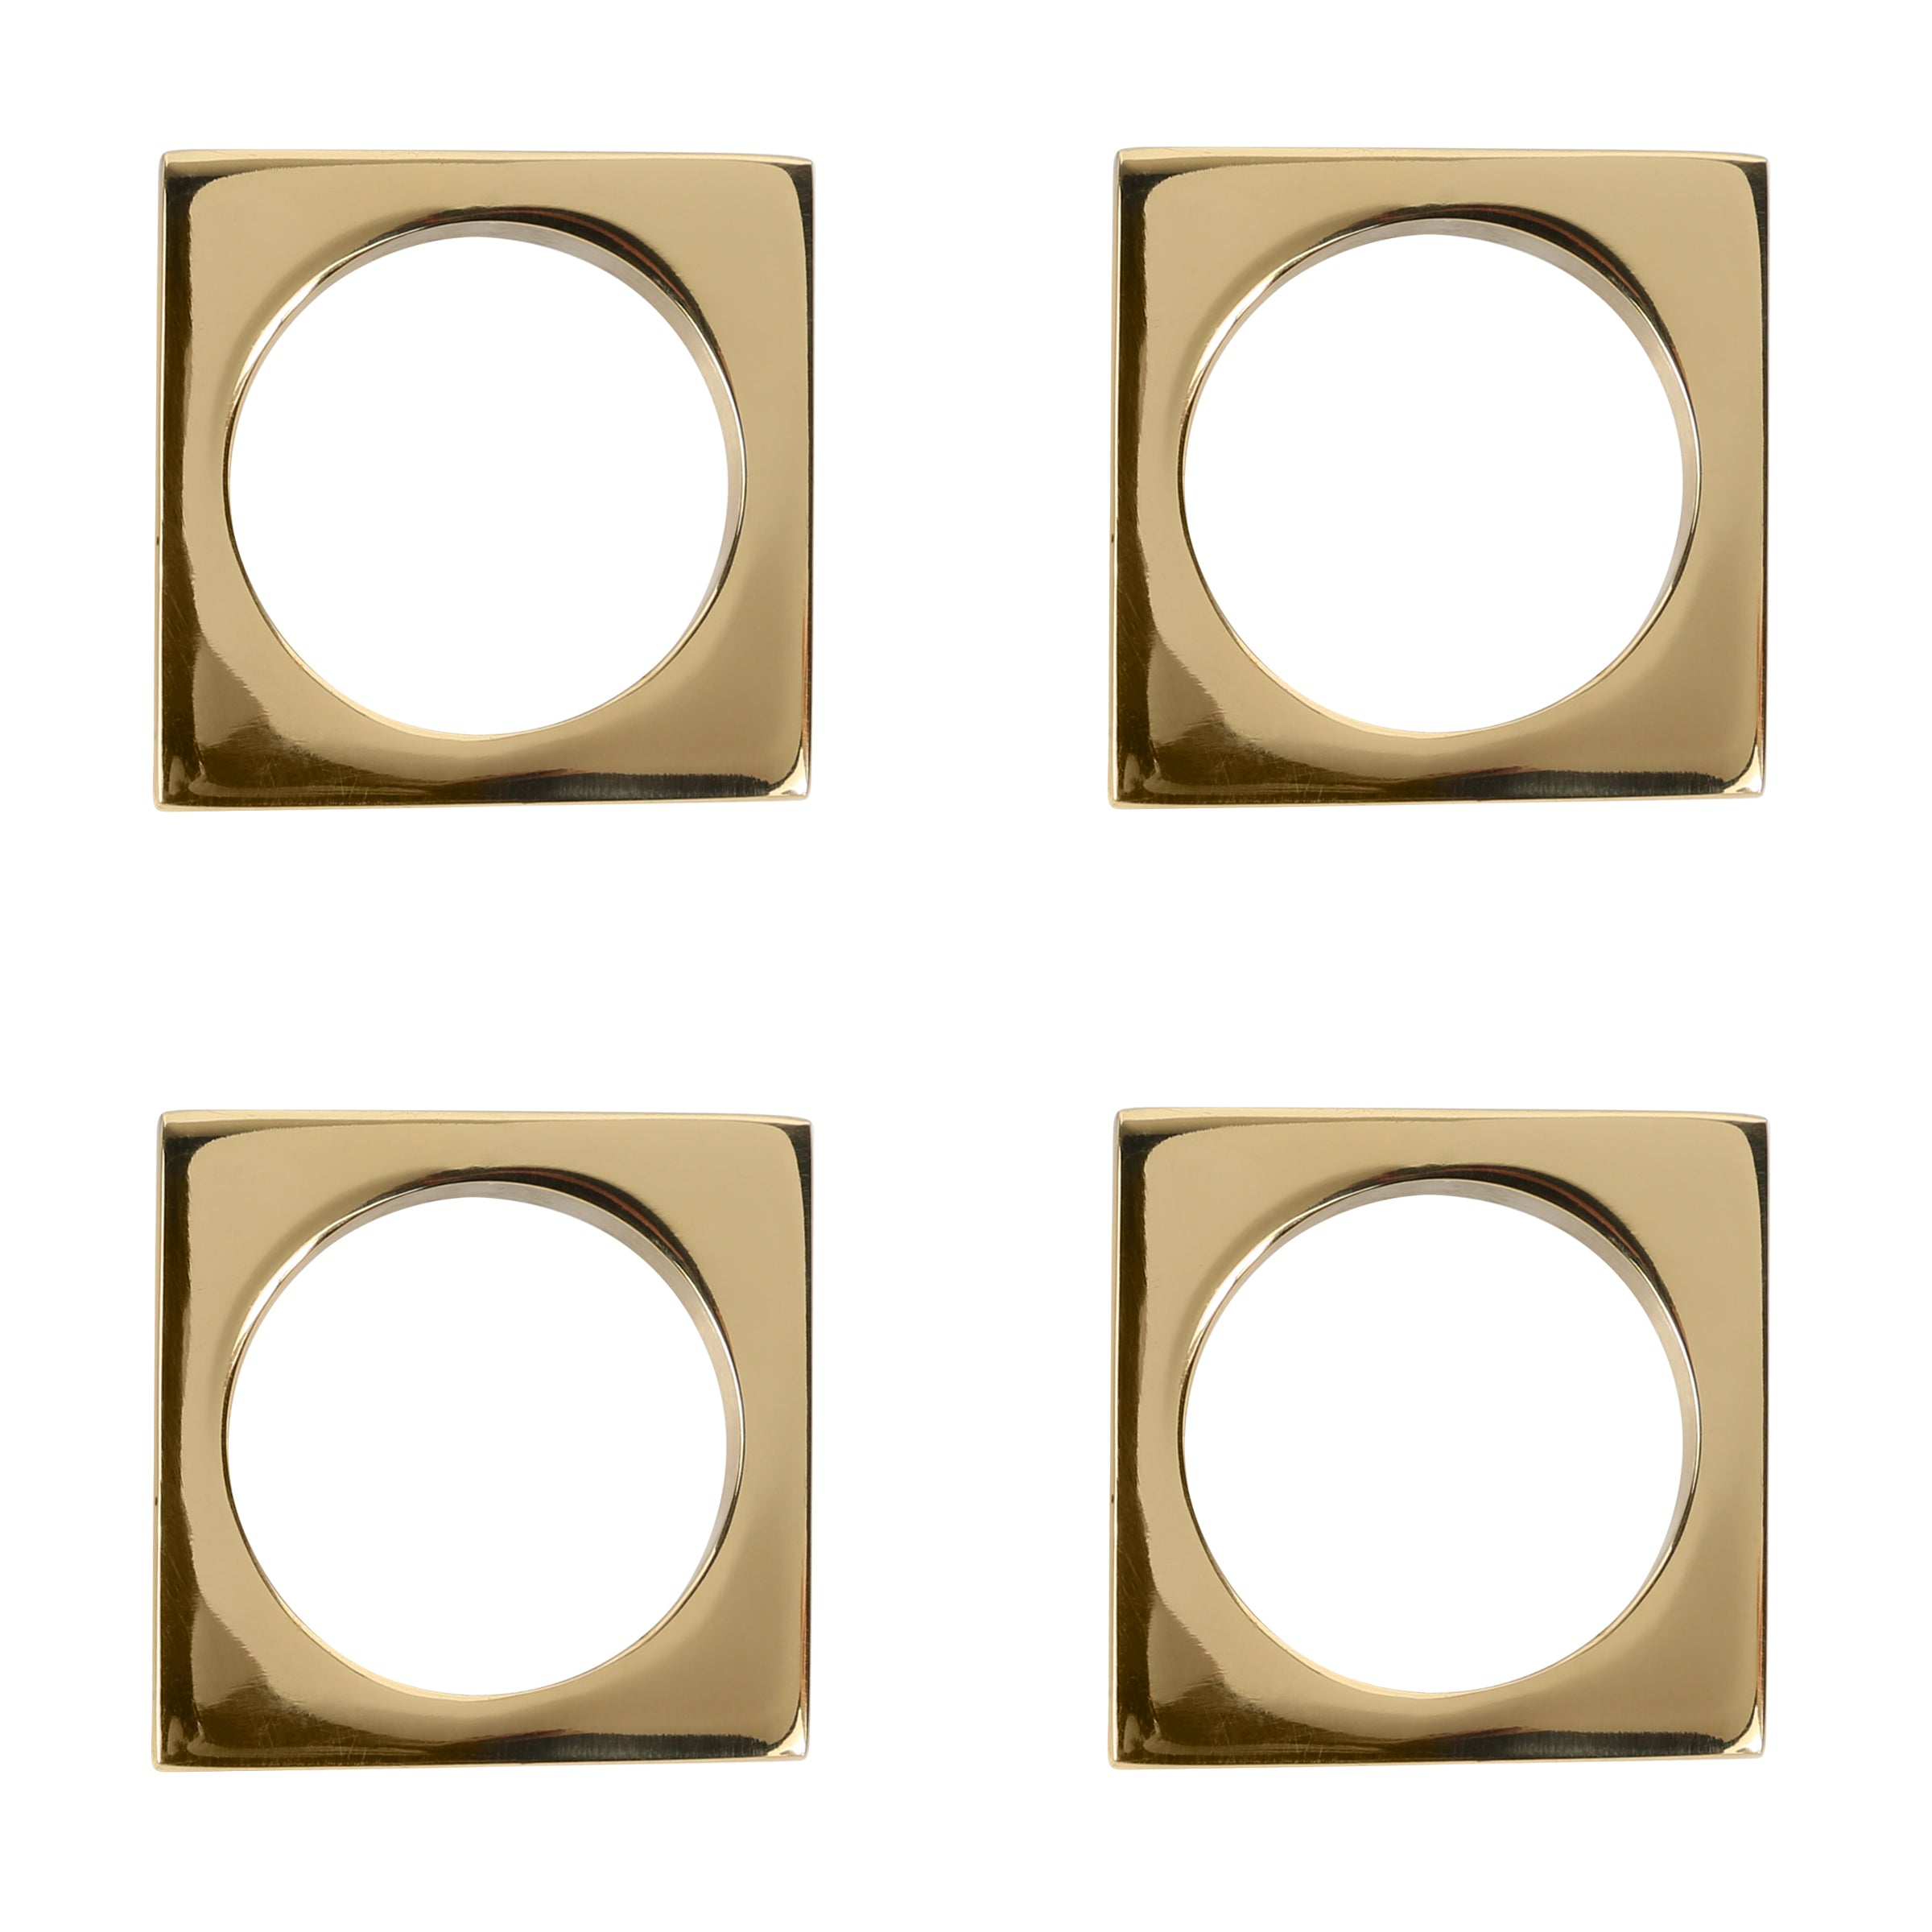 Set of 4 Modernist Napkin Rings in Solid Brass design by Sir/Madam